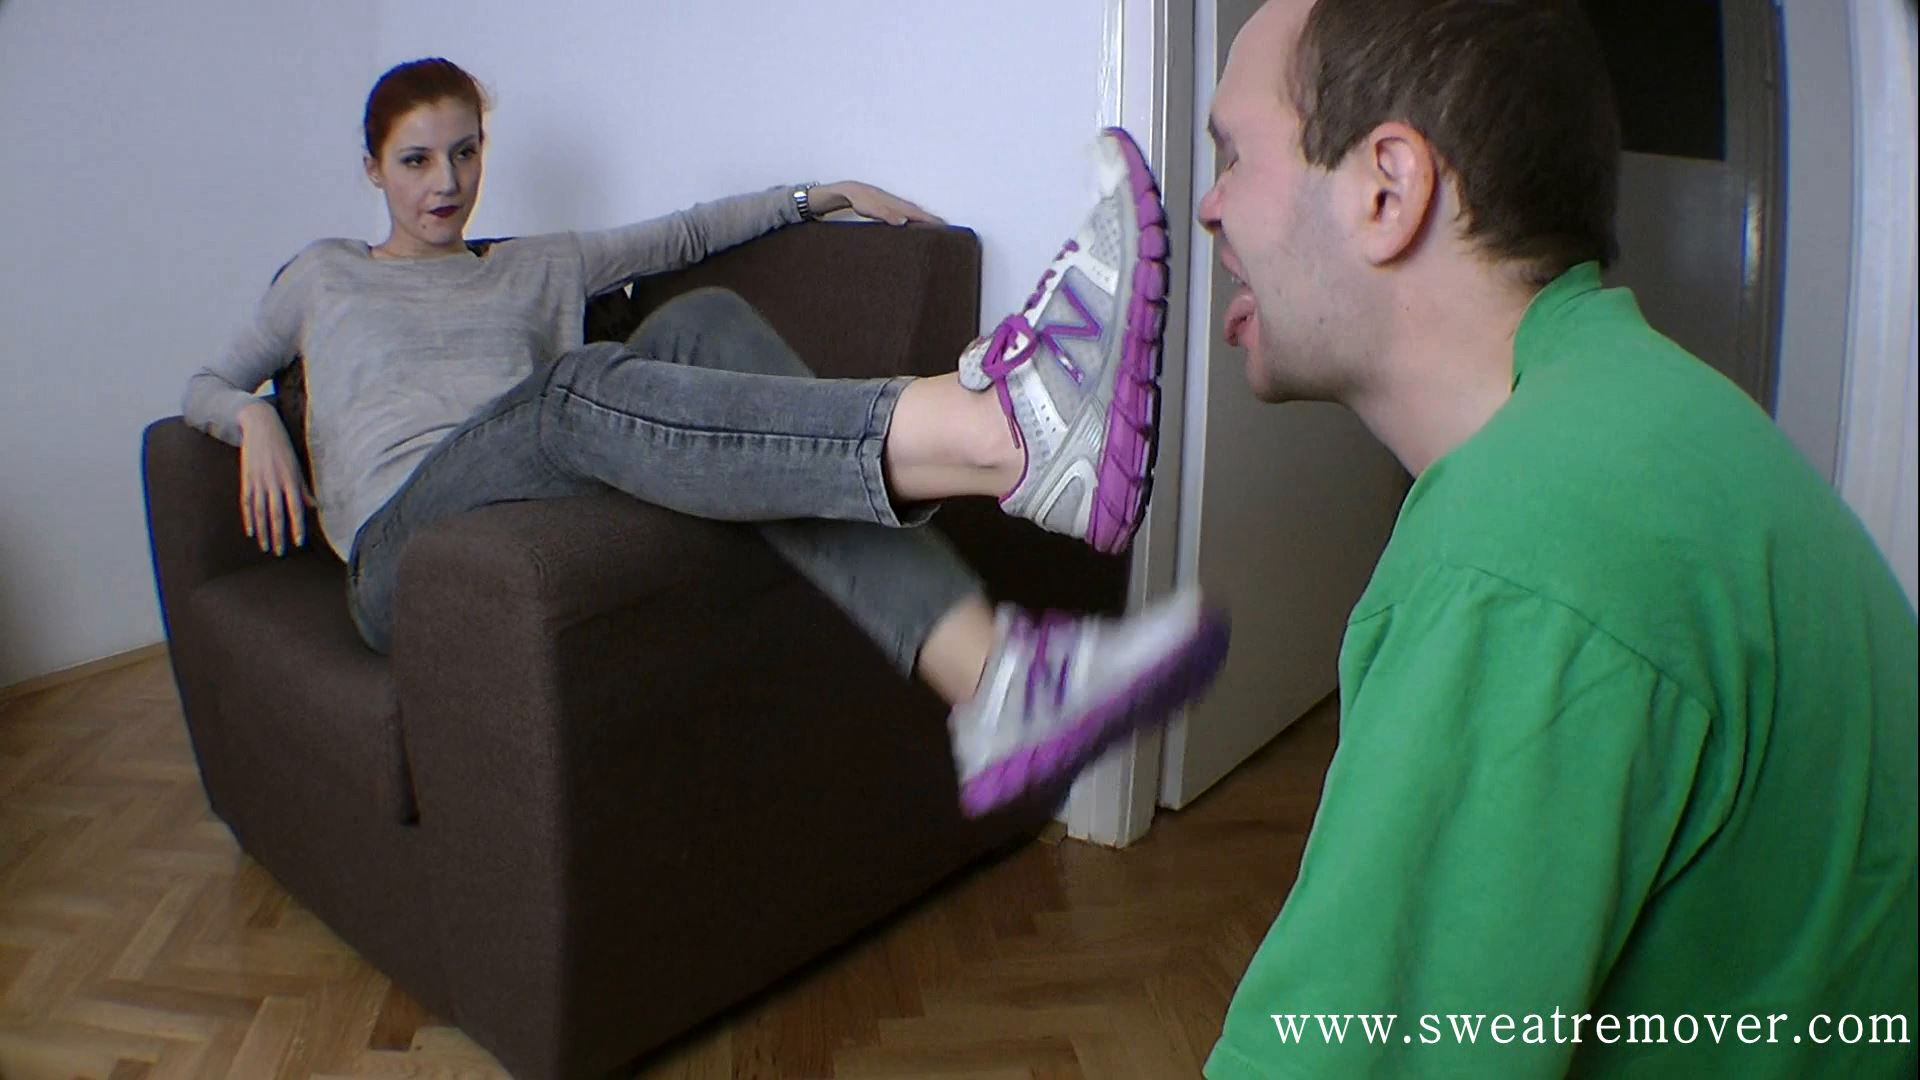 Goddess Victoria In Scene: This sneakers - SWEATREMOVER - FULL HD/1080p/MP4